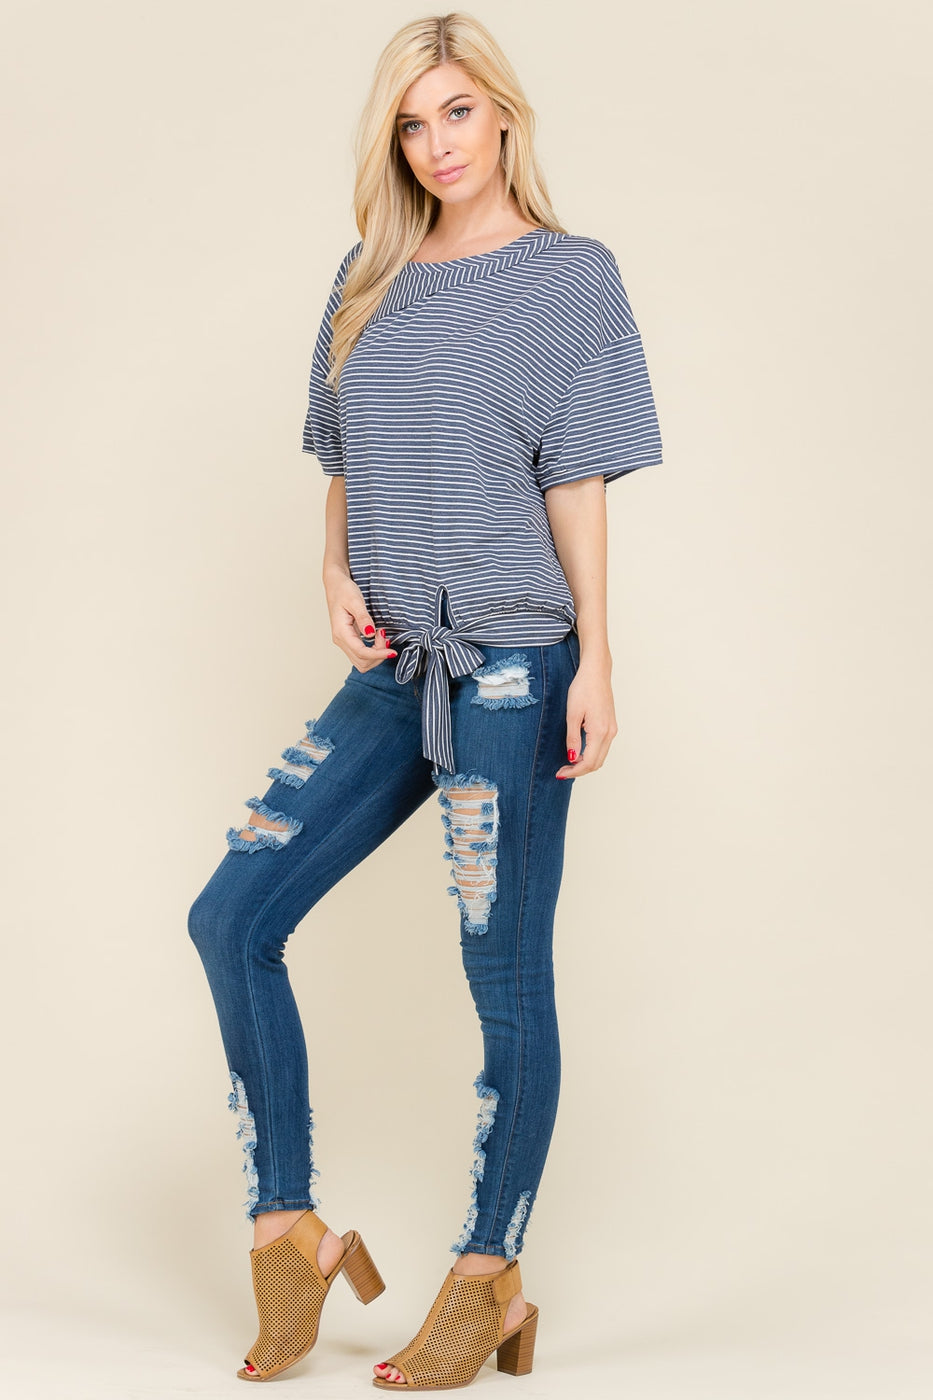 Stylish Navy Stripe Top With Bottom Tie Siin Bees